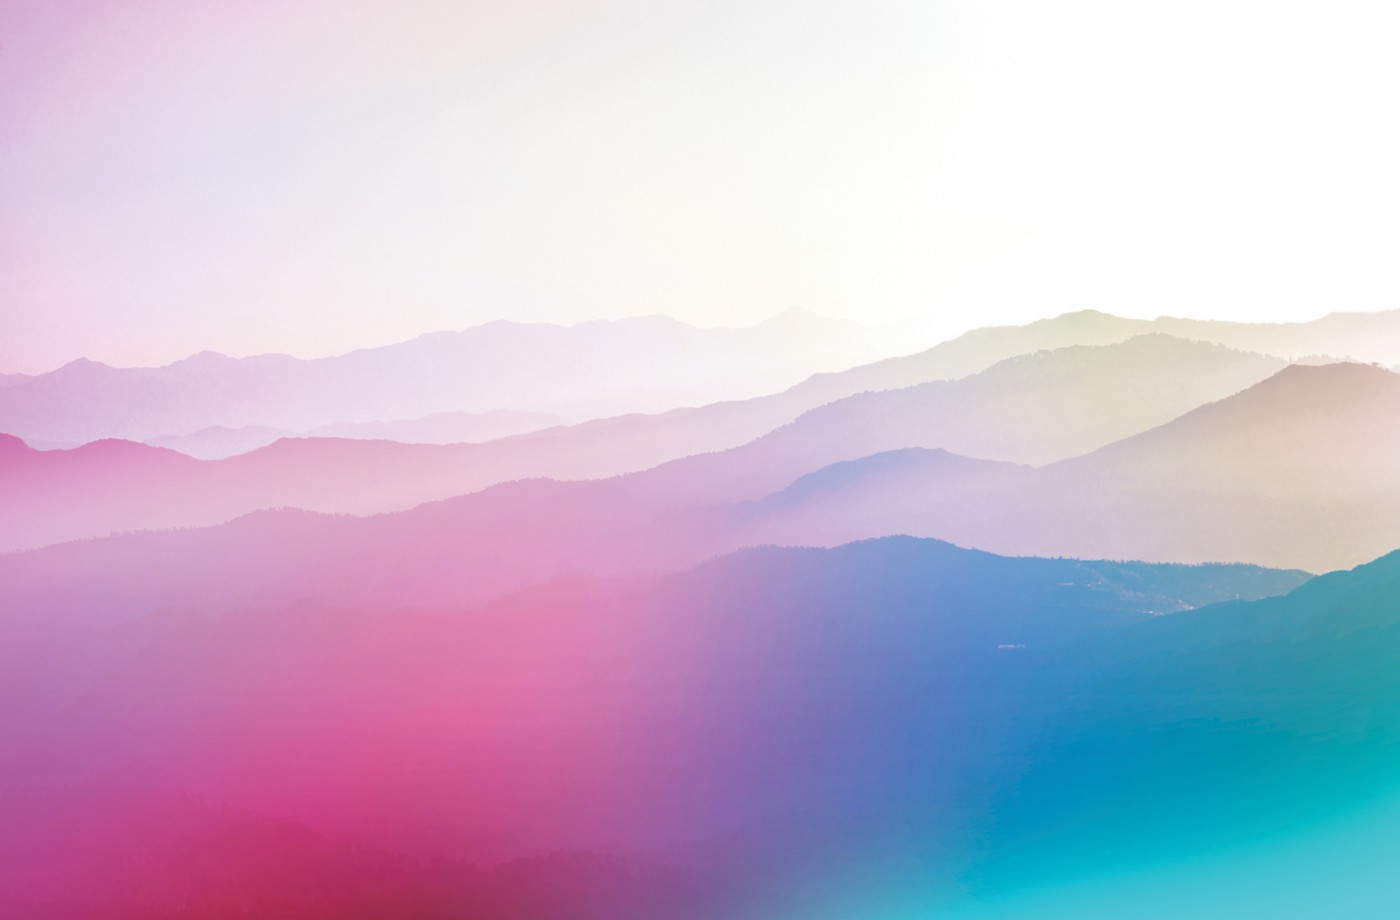 Multicolored gradient image of a mountain range.